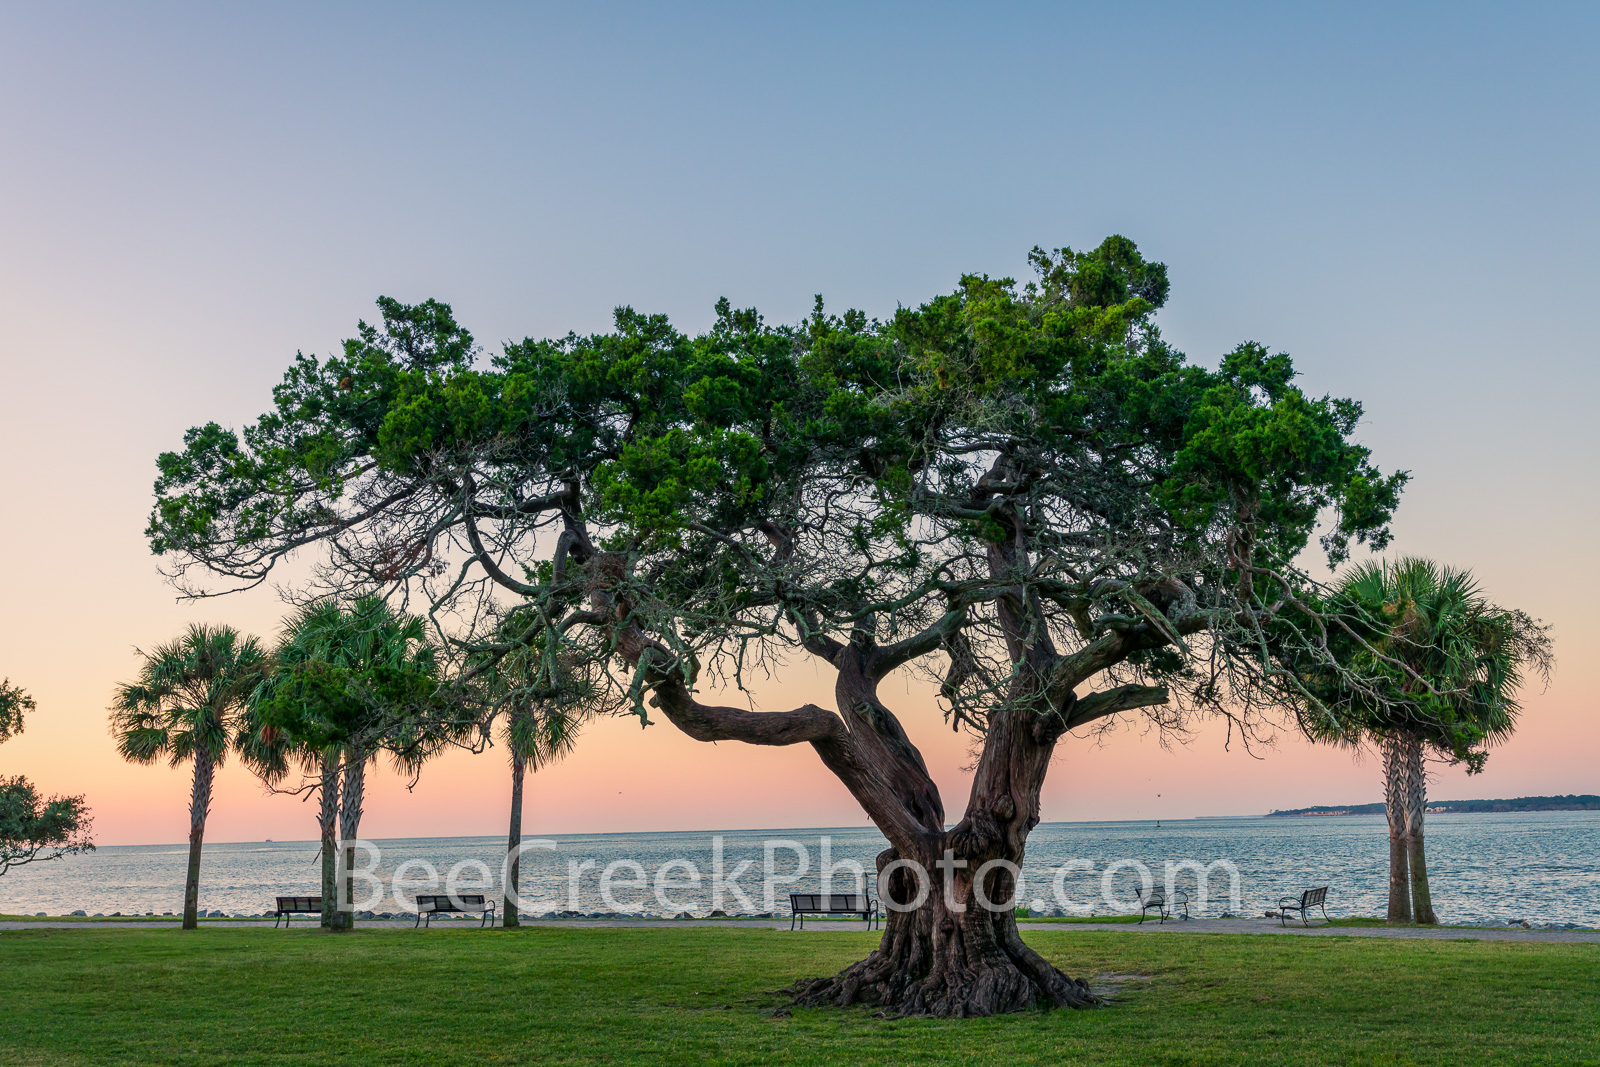 Sunrise Neptune Park Tree - Neptune Park Tree sunrise is the a park that runs along the ocean on St. Simon Island in George....